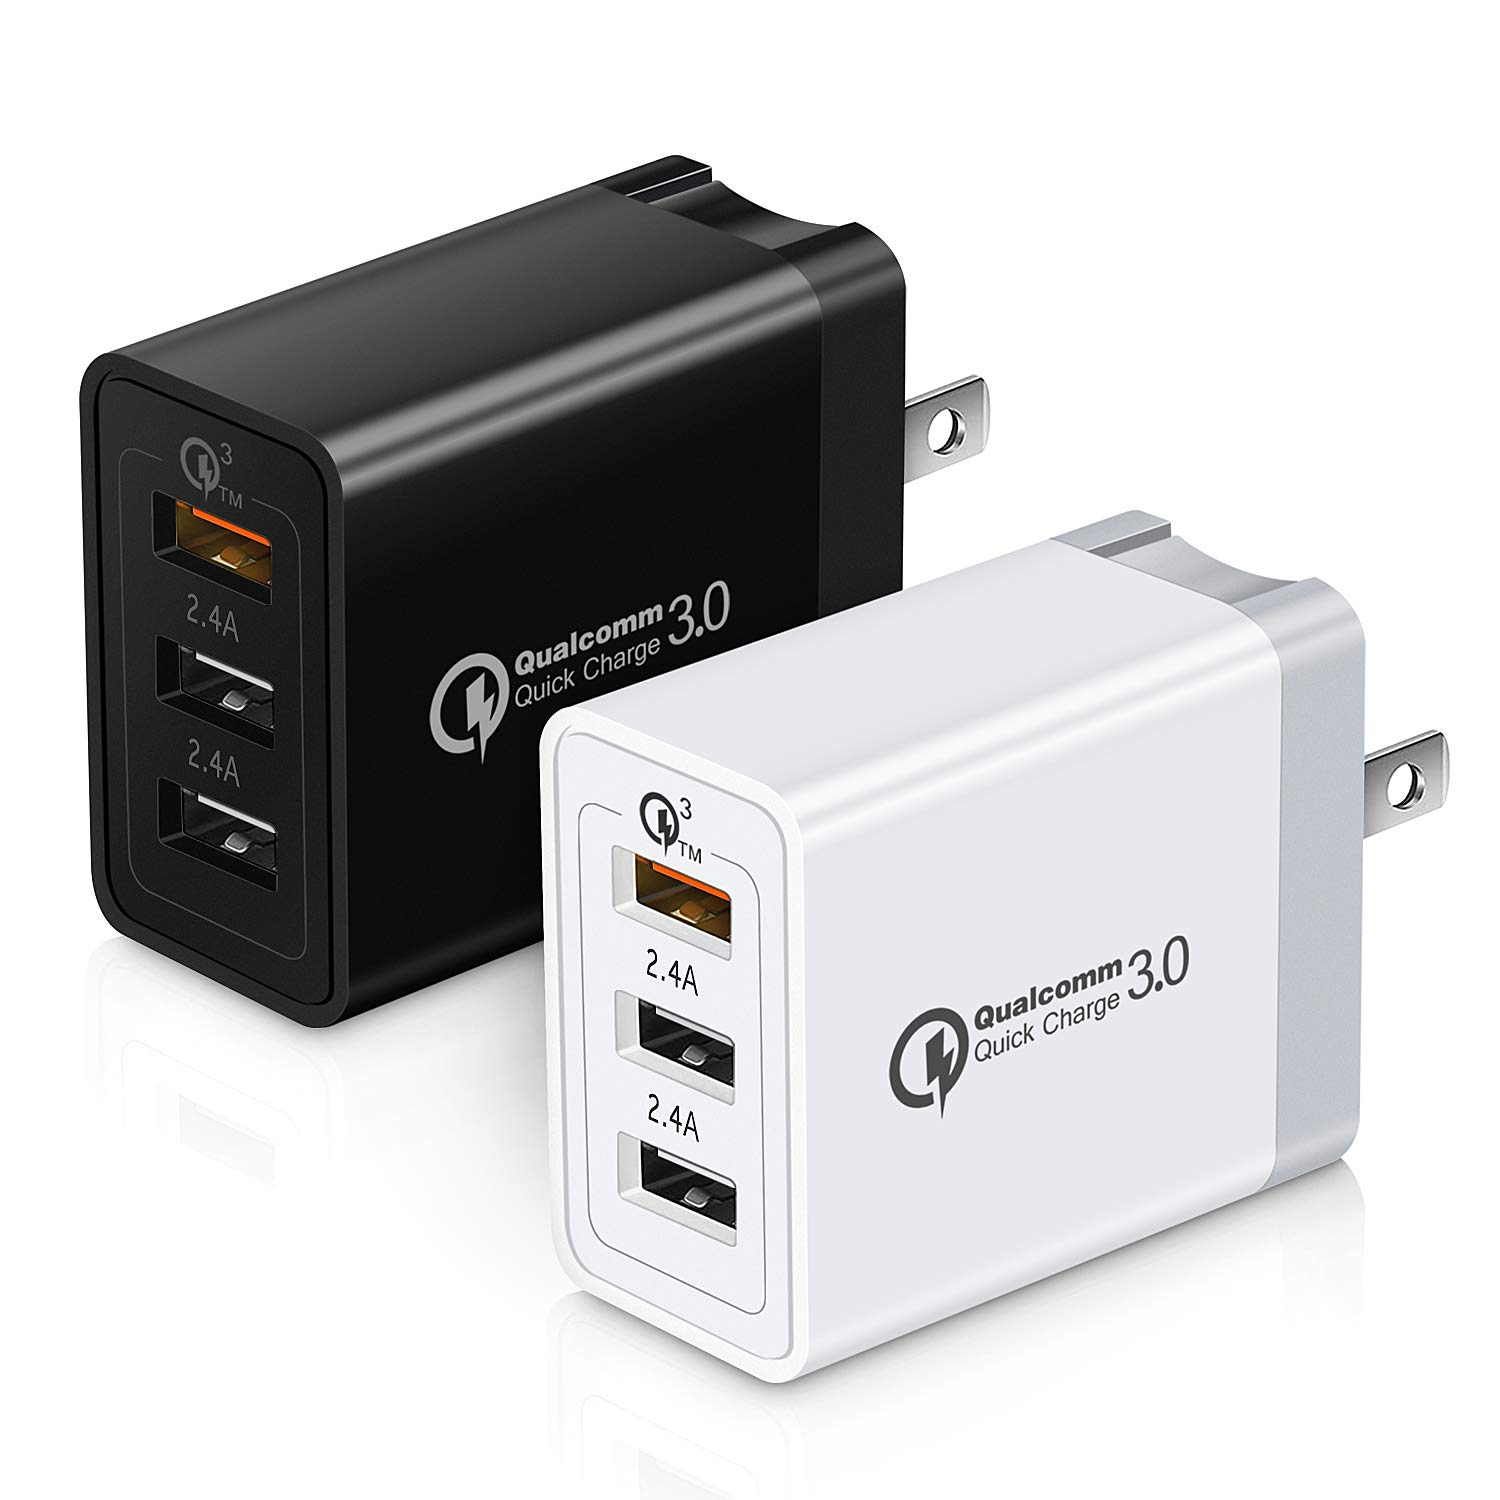 Canjoy 2 Pack 3 Ports USB Wall Charger Fast Charging Block Wall Adapter USB Charger with Fordable Plug Compatible with iPhone XS//Max//XR//X//8//7//6s//Plus Quick Charge 3.0 Wall Charger Samsung Galaxy S10 S10E S9 S8 Plus,7.5W//10W Wireless Charger iPad Pro//Air